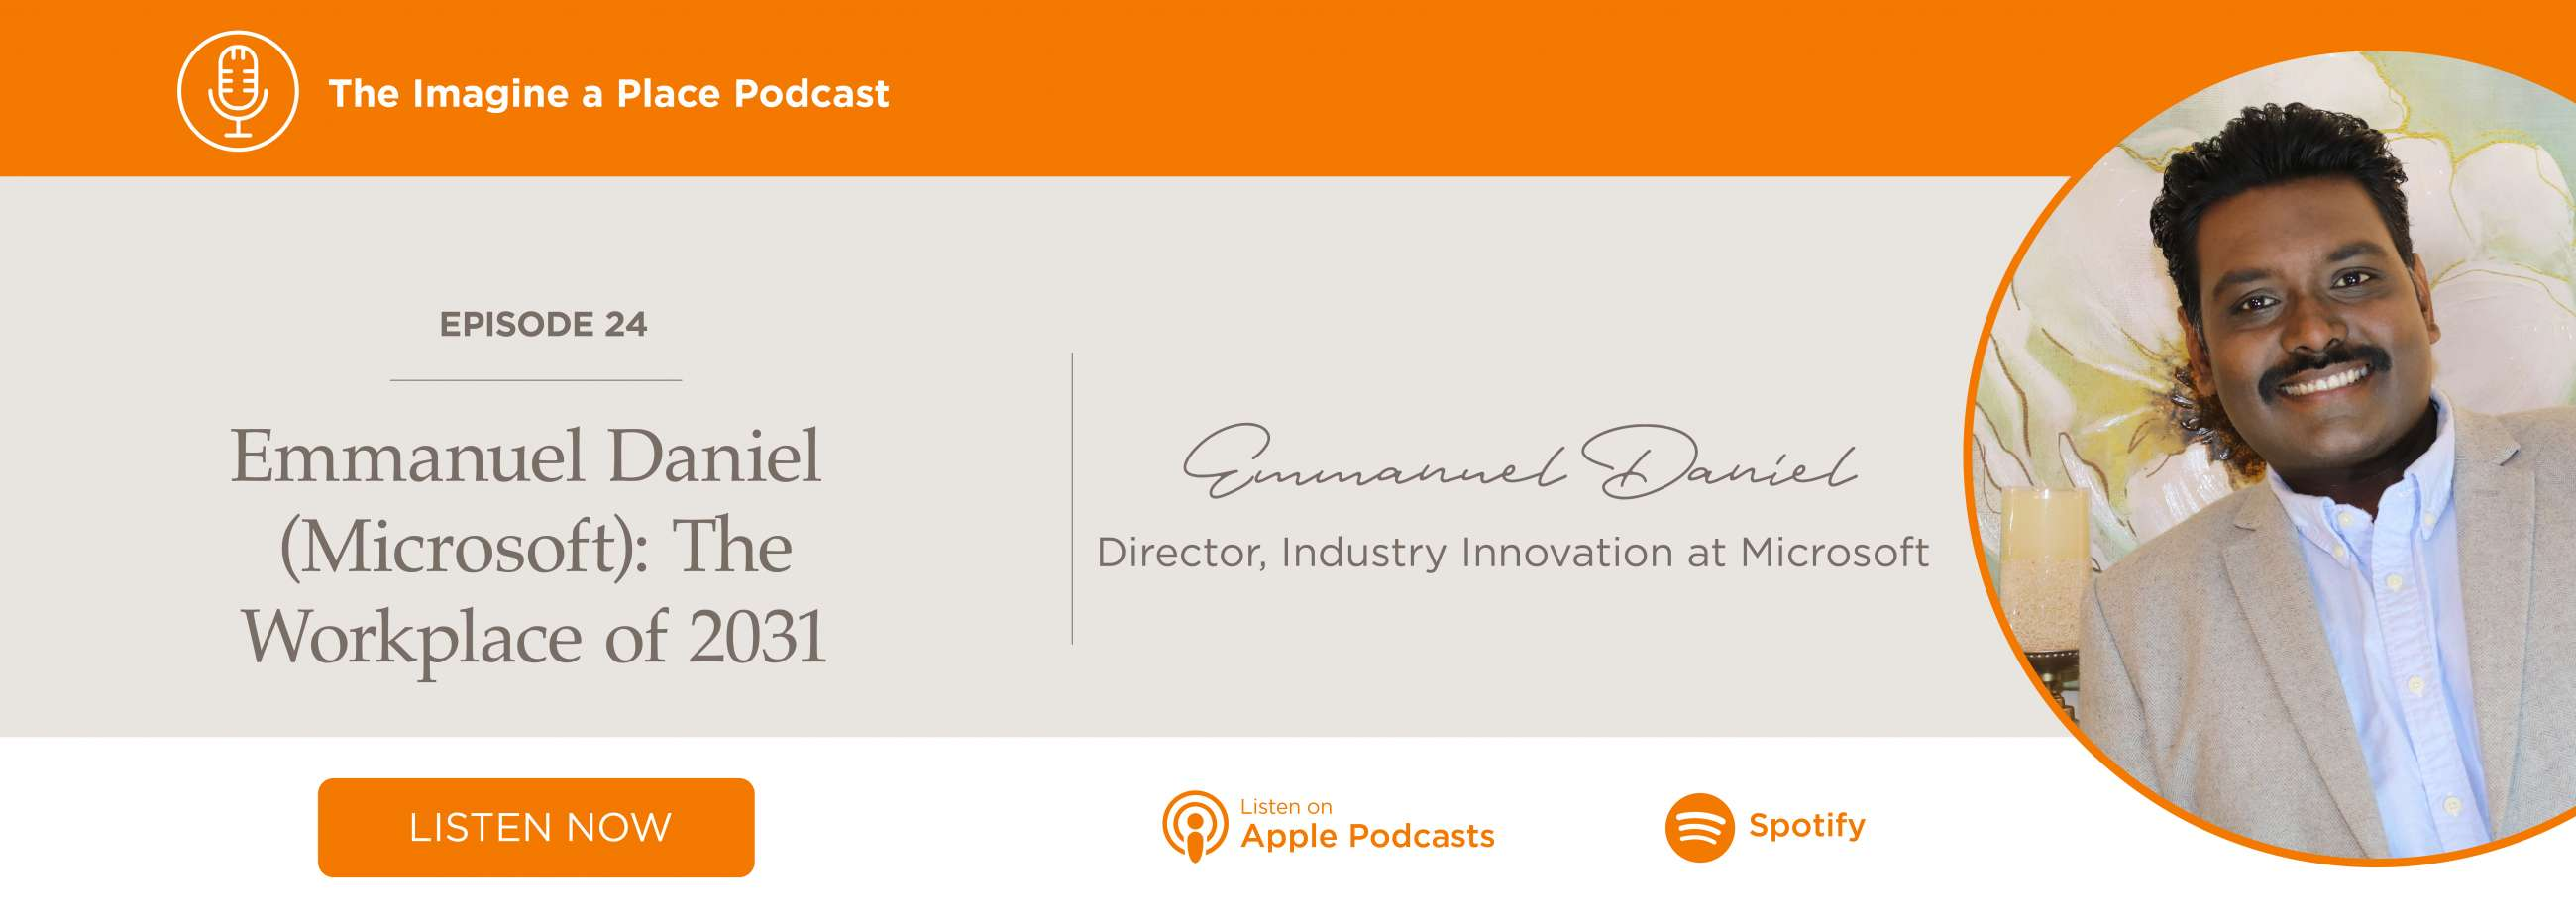 Imagine a Place Podcast with Emmanuel Daniel of Microsoft